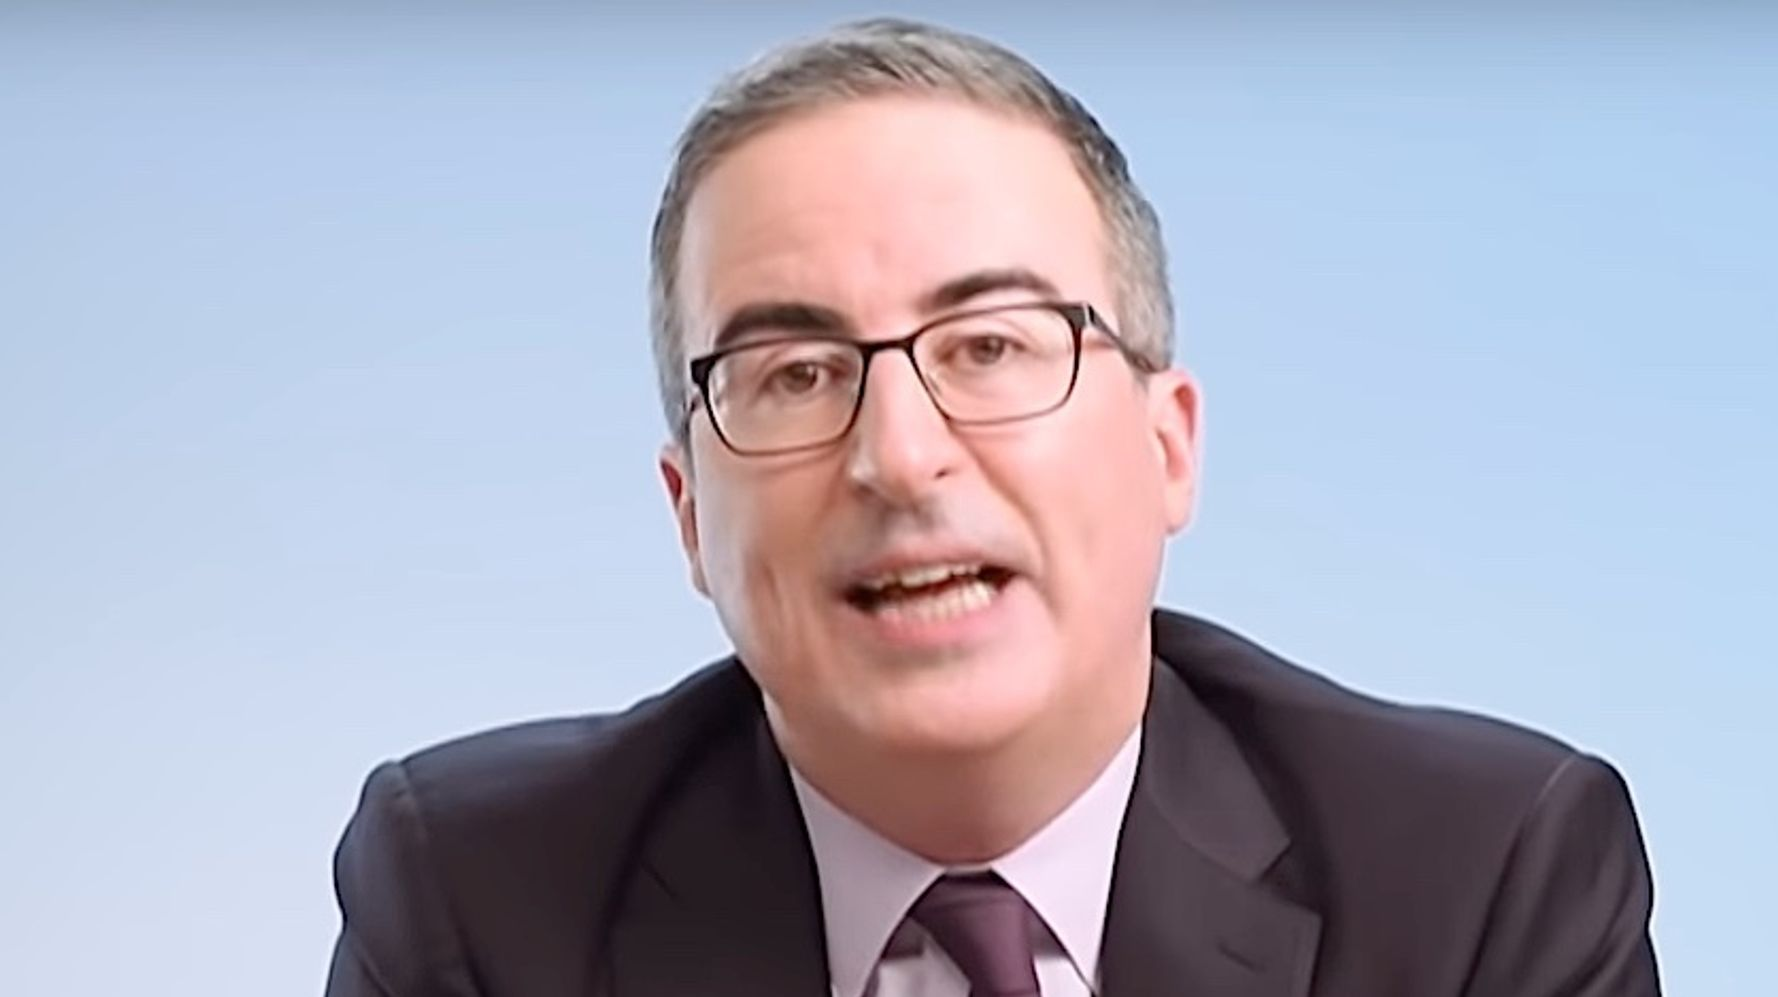 John Oliver Makes One Of The Most Compelling Cases Yet For Reparations